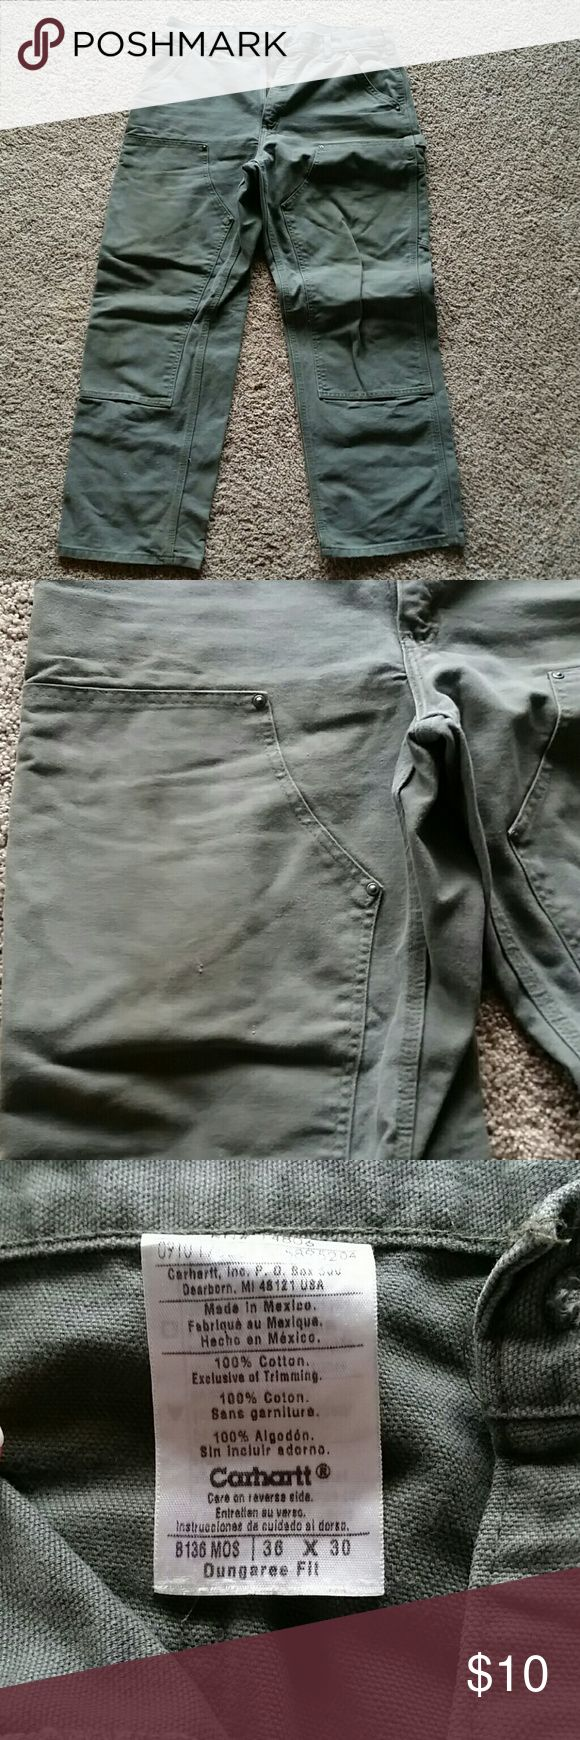 Men's Carhartt pants 36x30 Used some but overall great condition. Dusty forest/olive green. 36 waist x 30 length Carhartt Pants